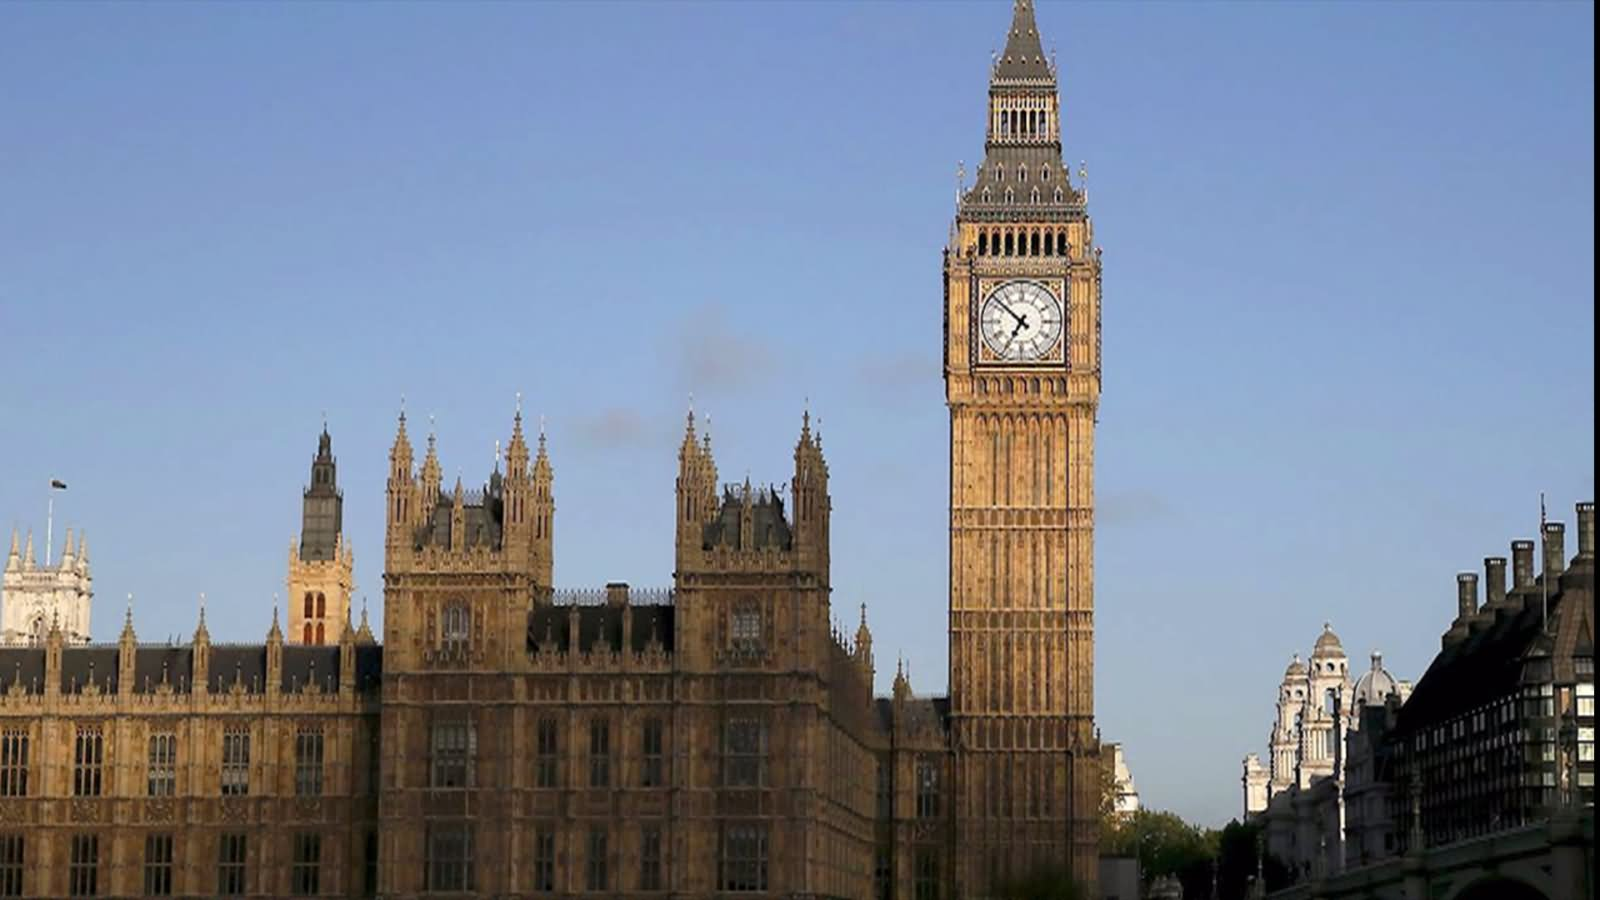 40 Very Beautiful Big Ben London Images And Pictures